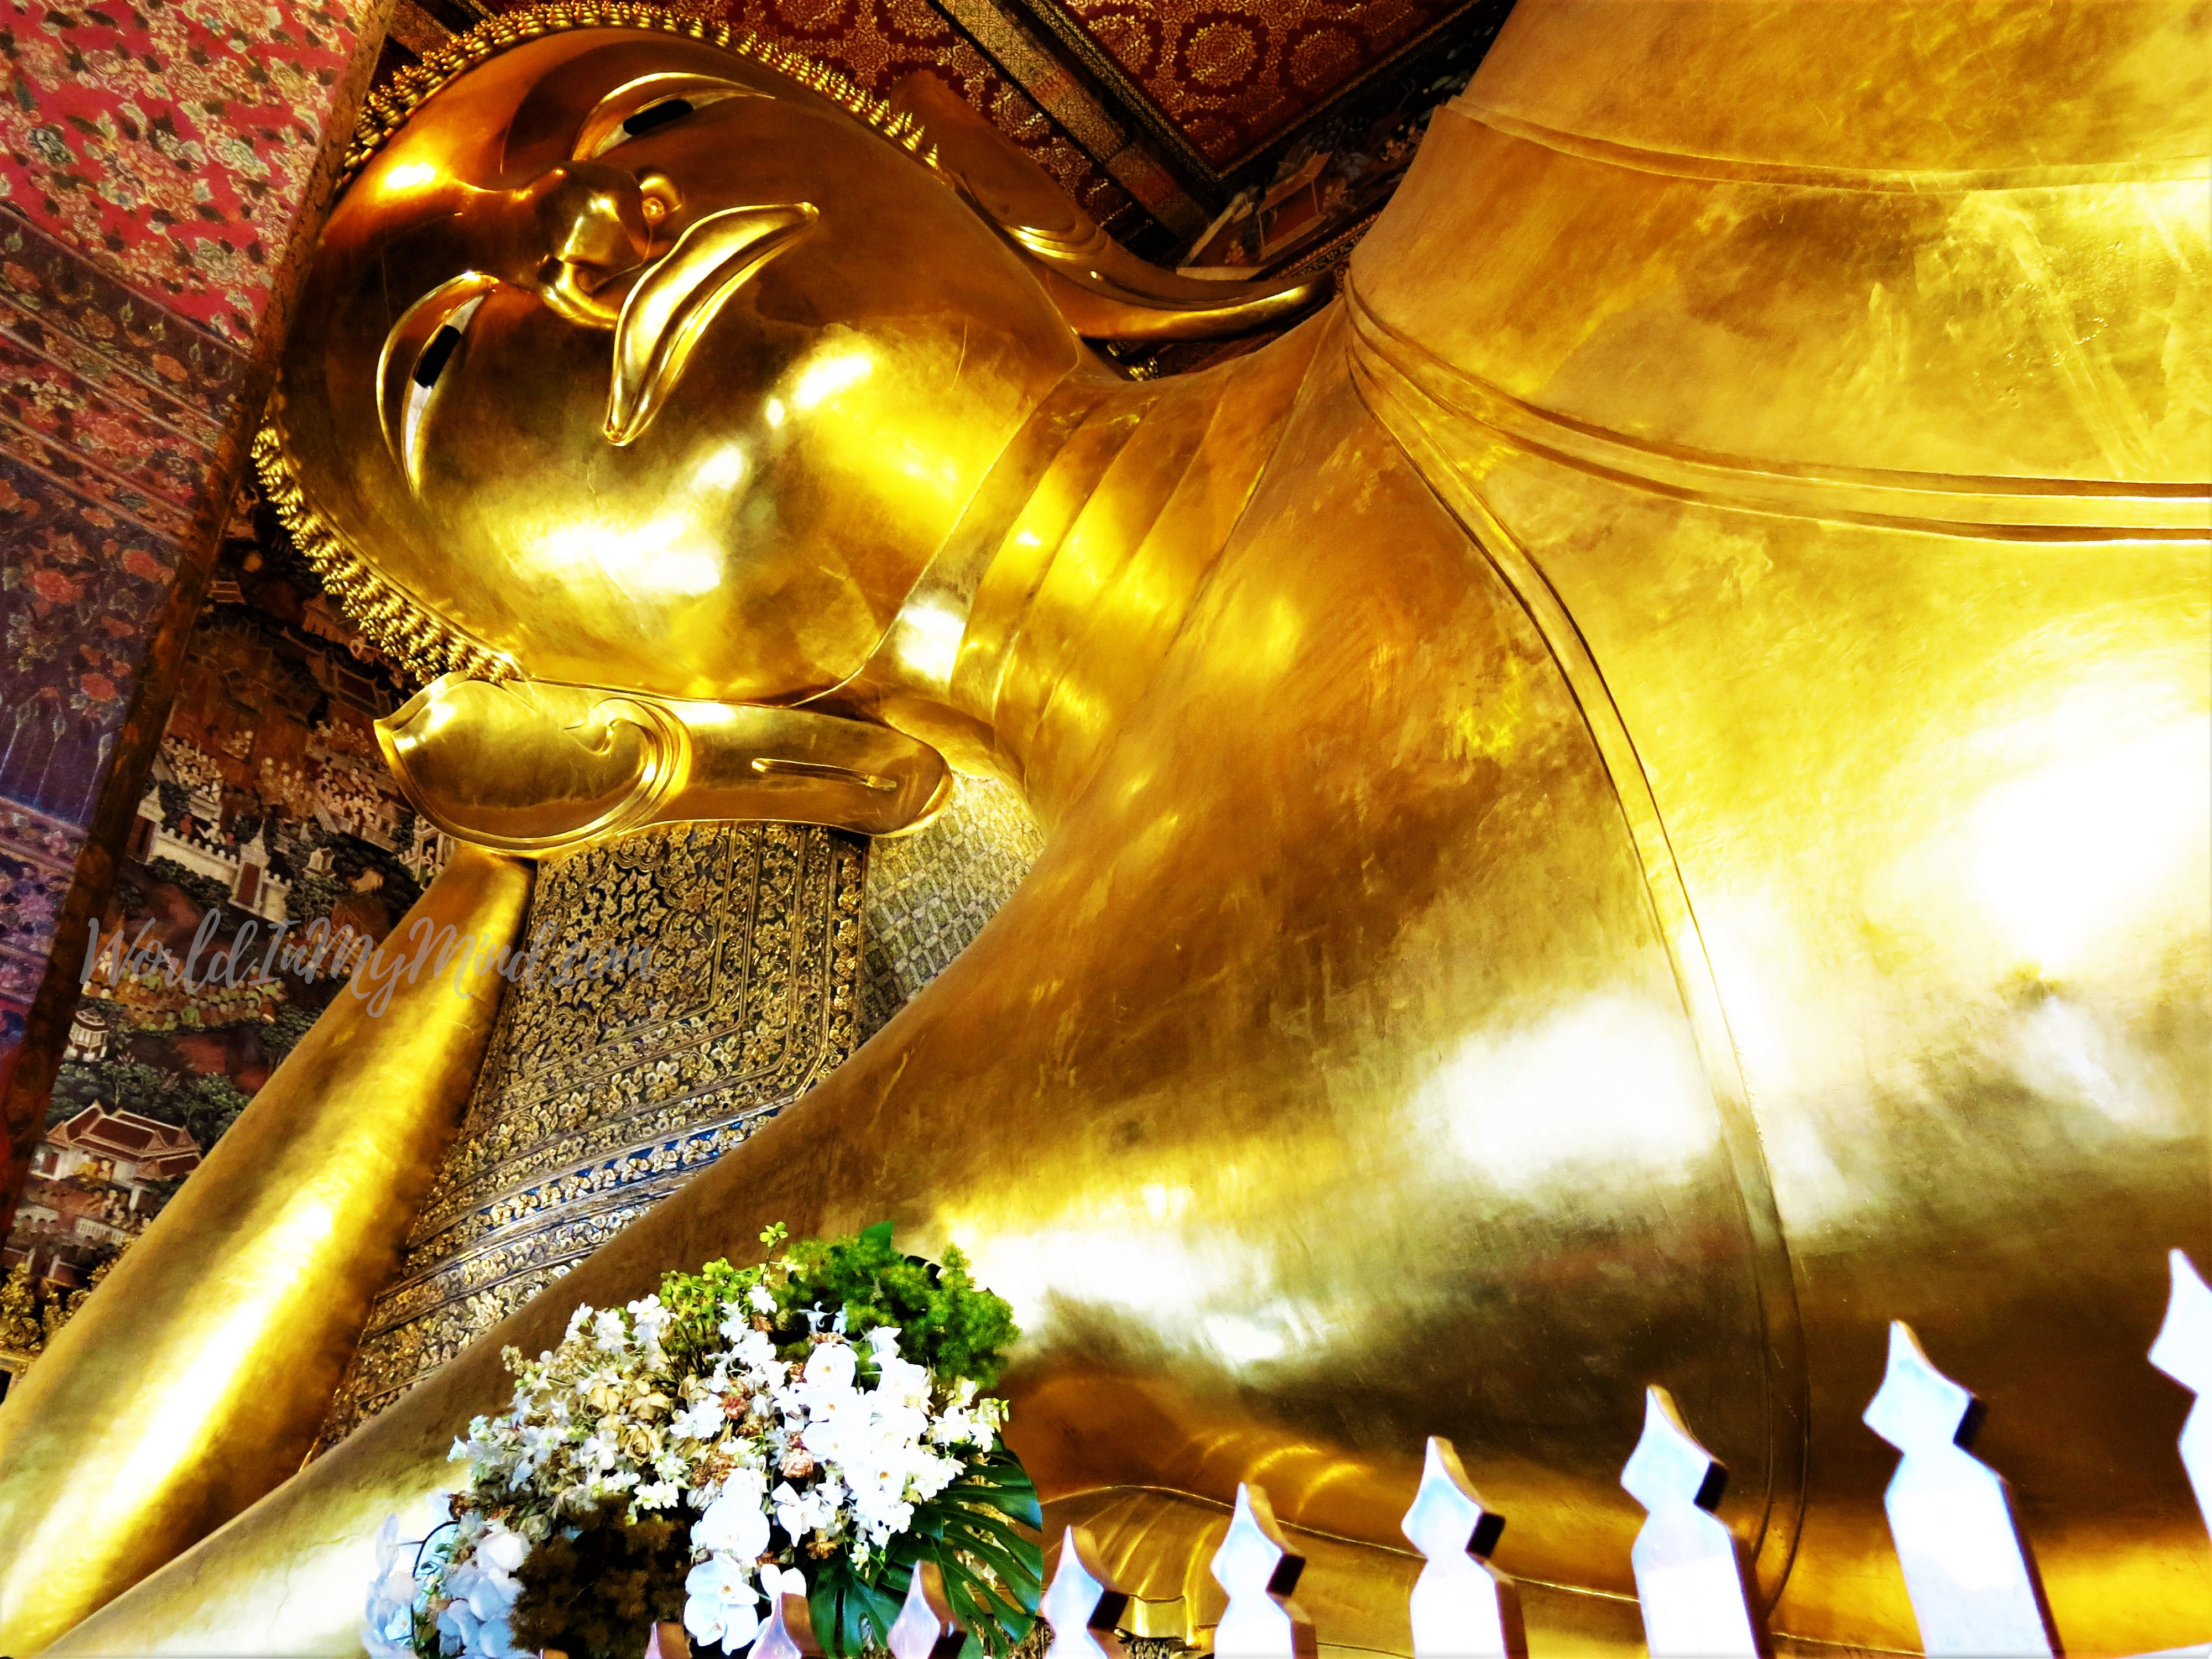 Wat Pho in Bangkok. Temple of Reclining Buddha